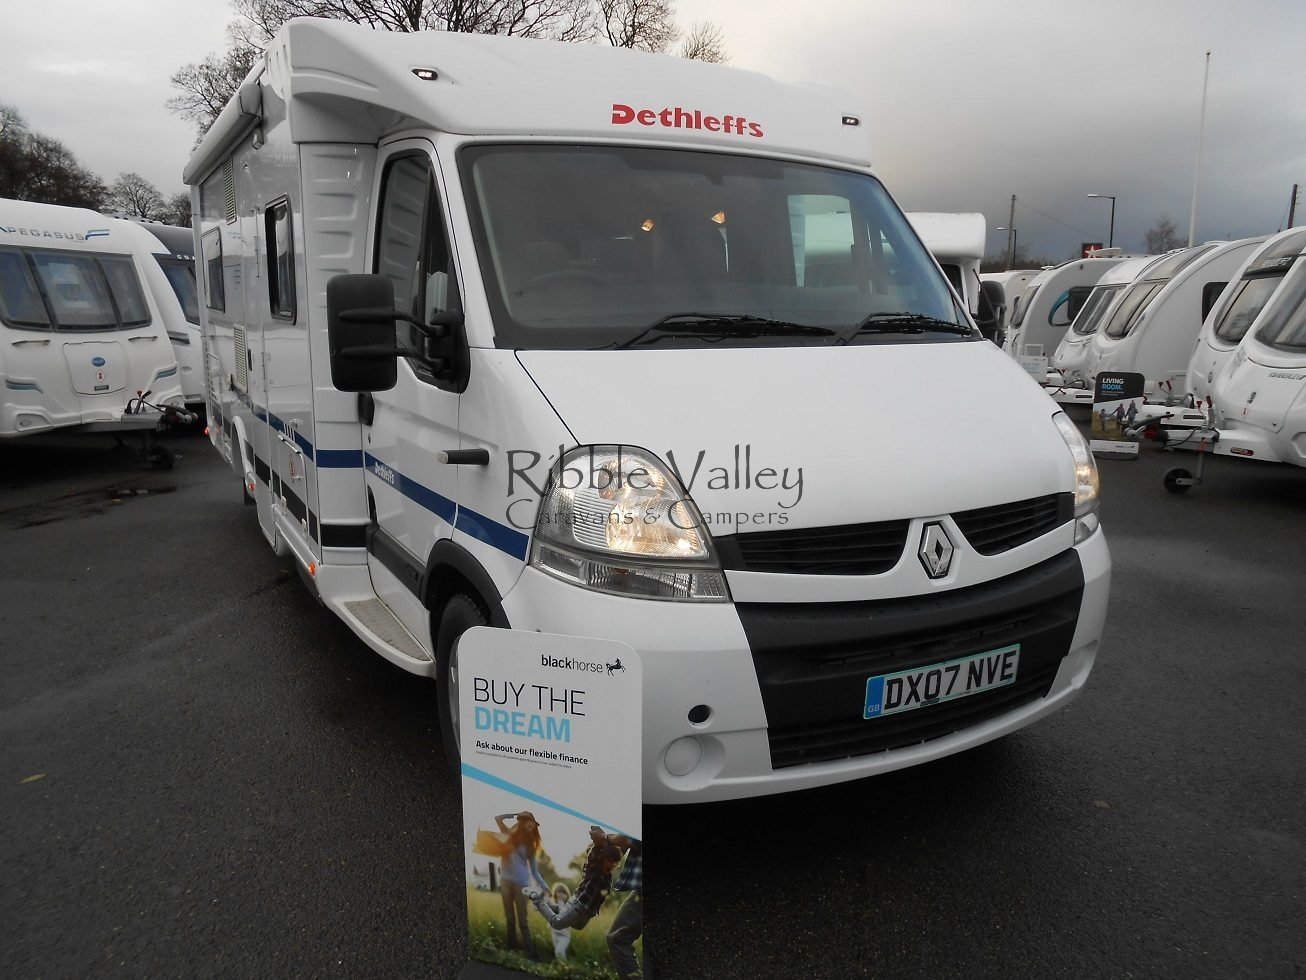 Here we have a 2007 Dethleffs Esprit RT 6844 Low Profile Motorhome in outstanding condition. Only 1 owner from new with full main dealer service history. The layout includes captains chairs at the front, dinette area which assembles into a bedroom. Spacious kitchen fitted with integrated appliances including a large fridge freezer. Fixed french double bed with corner bathroom including a cassette toilet, separate shower and hand wash basin. This vehicle includes: Rear seatbelts Air con Cruise control Windout awning Bike rack with roof ladder. This vehicle will come on the road with 1 years warranty at the advertised price. Finance packages are available subject to status. For more details please call 07742972828. Open Saturday and Sunday, please call before making a long journey.